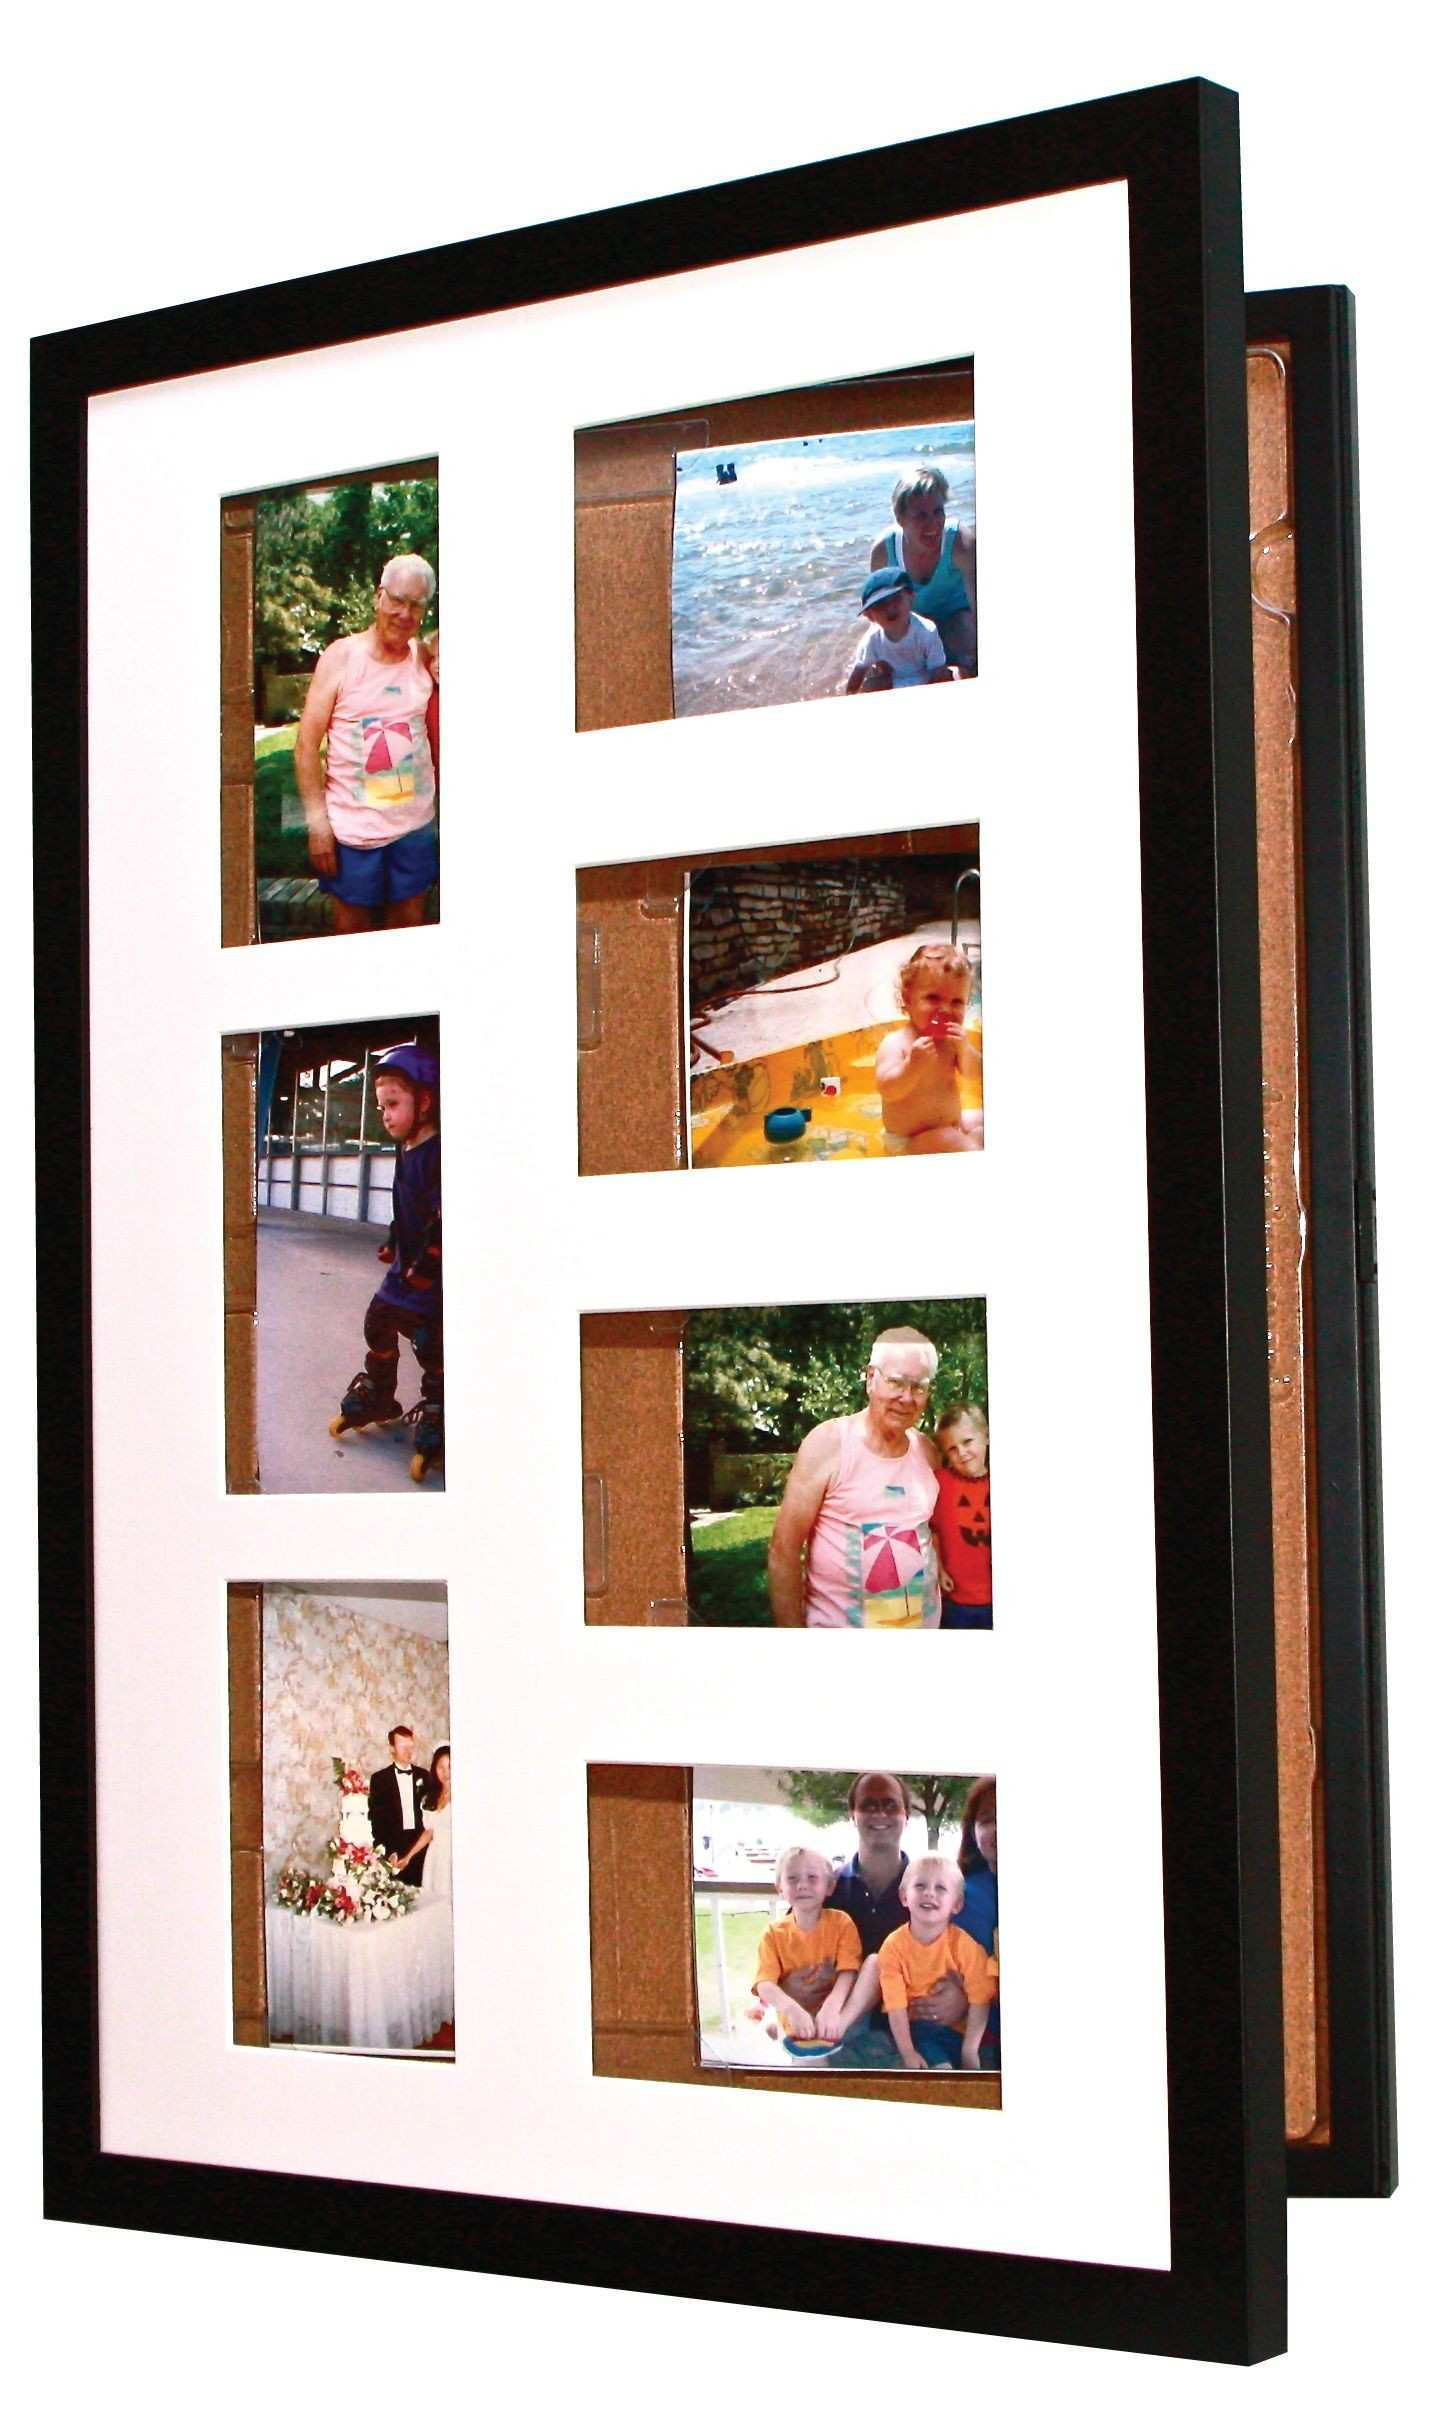 The Pinster Pix lets you use the frame as a shadowbox corkboard or